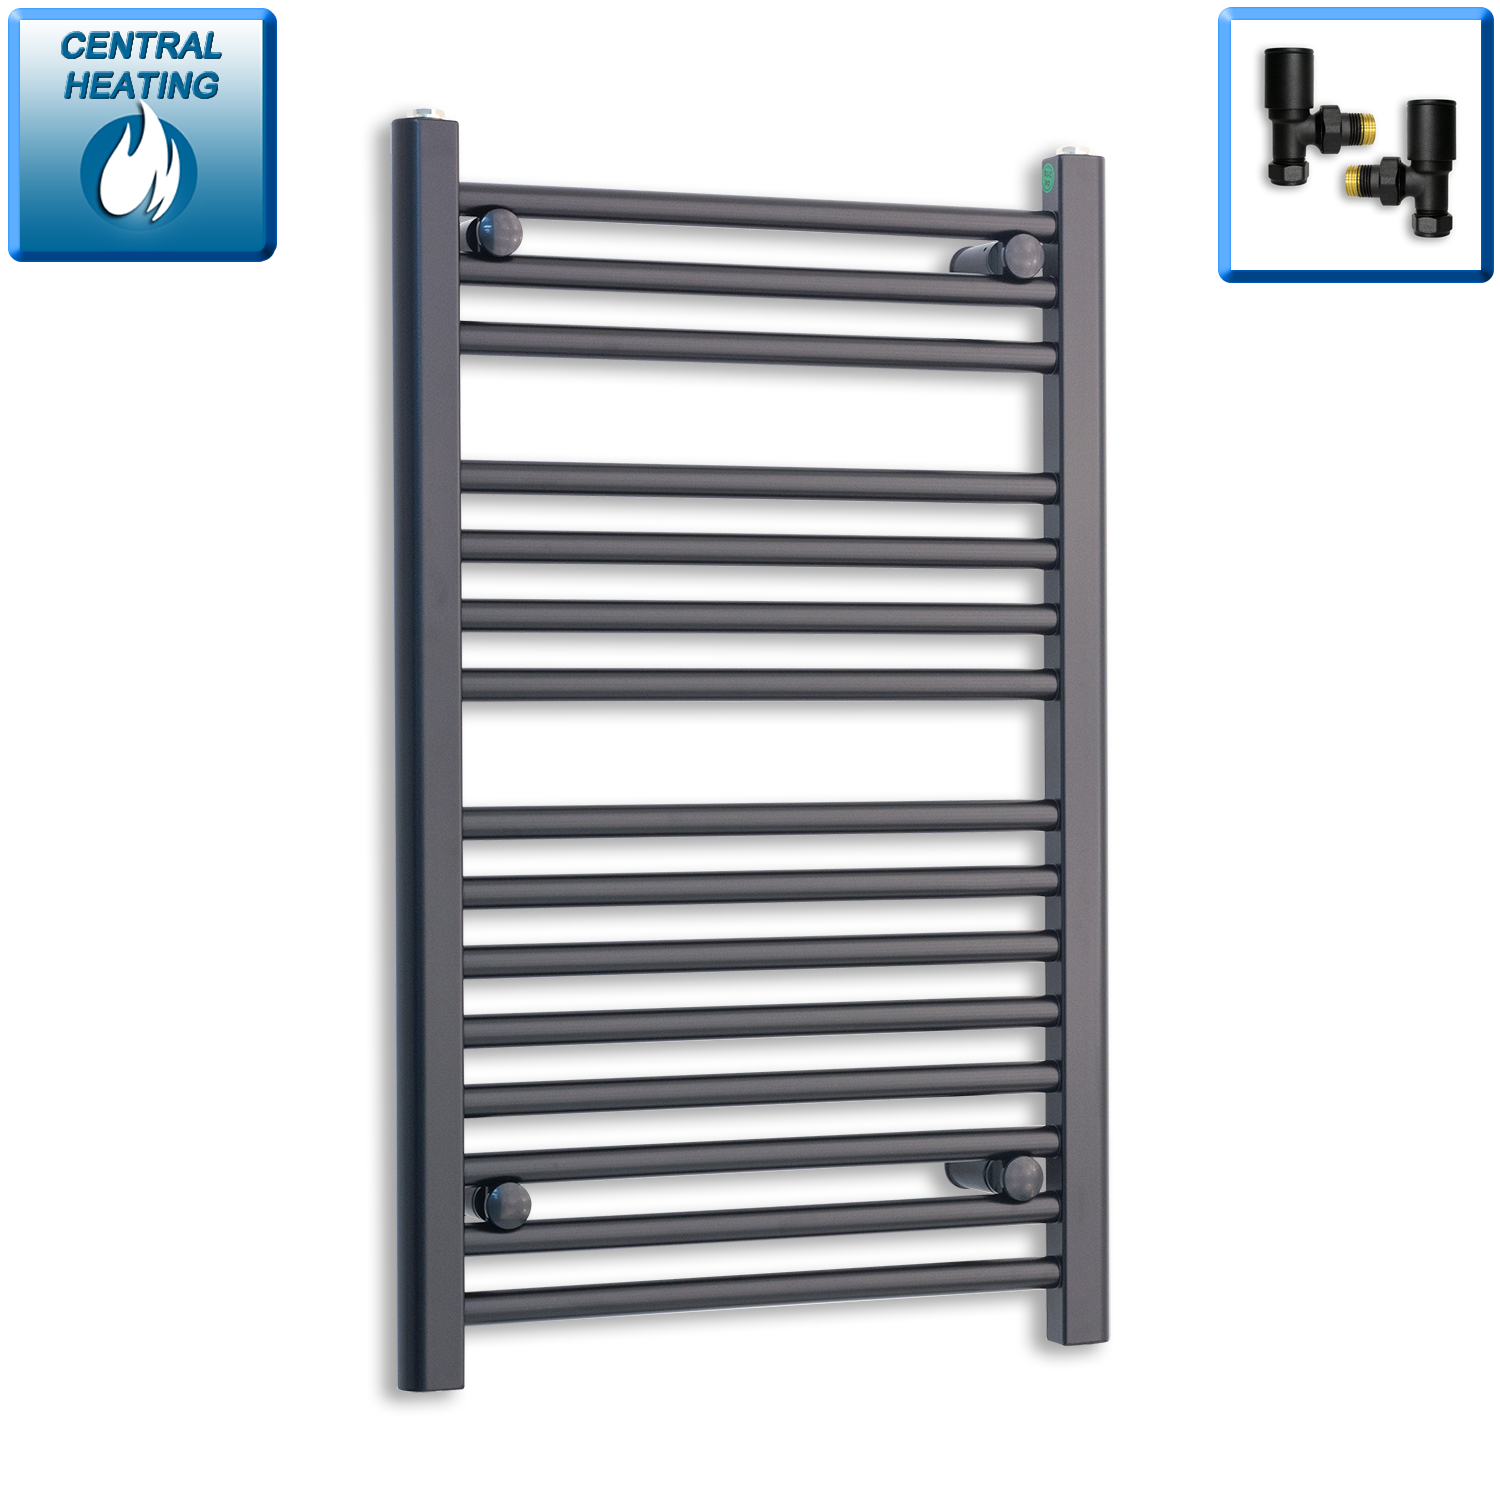 500mm Wide 800mm High Black Towel Rail Radiator With Angled Valve